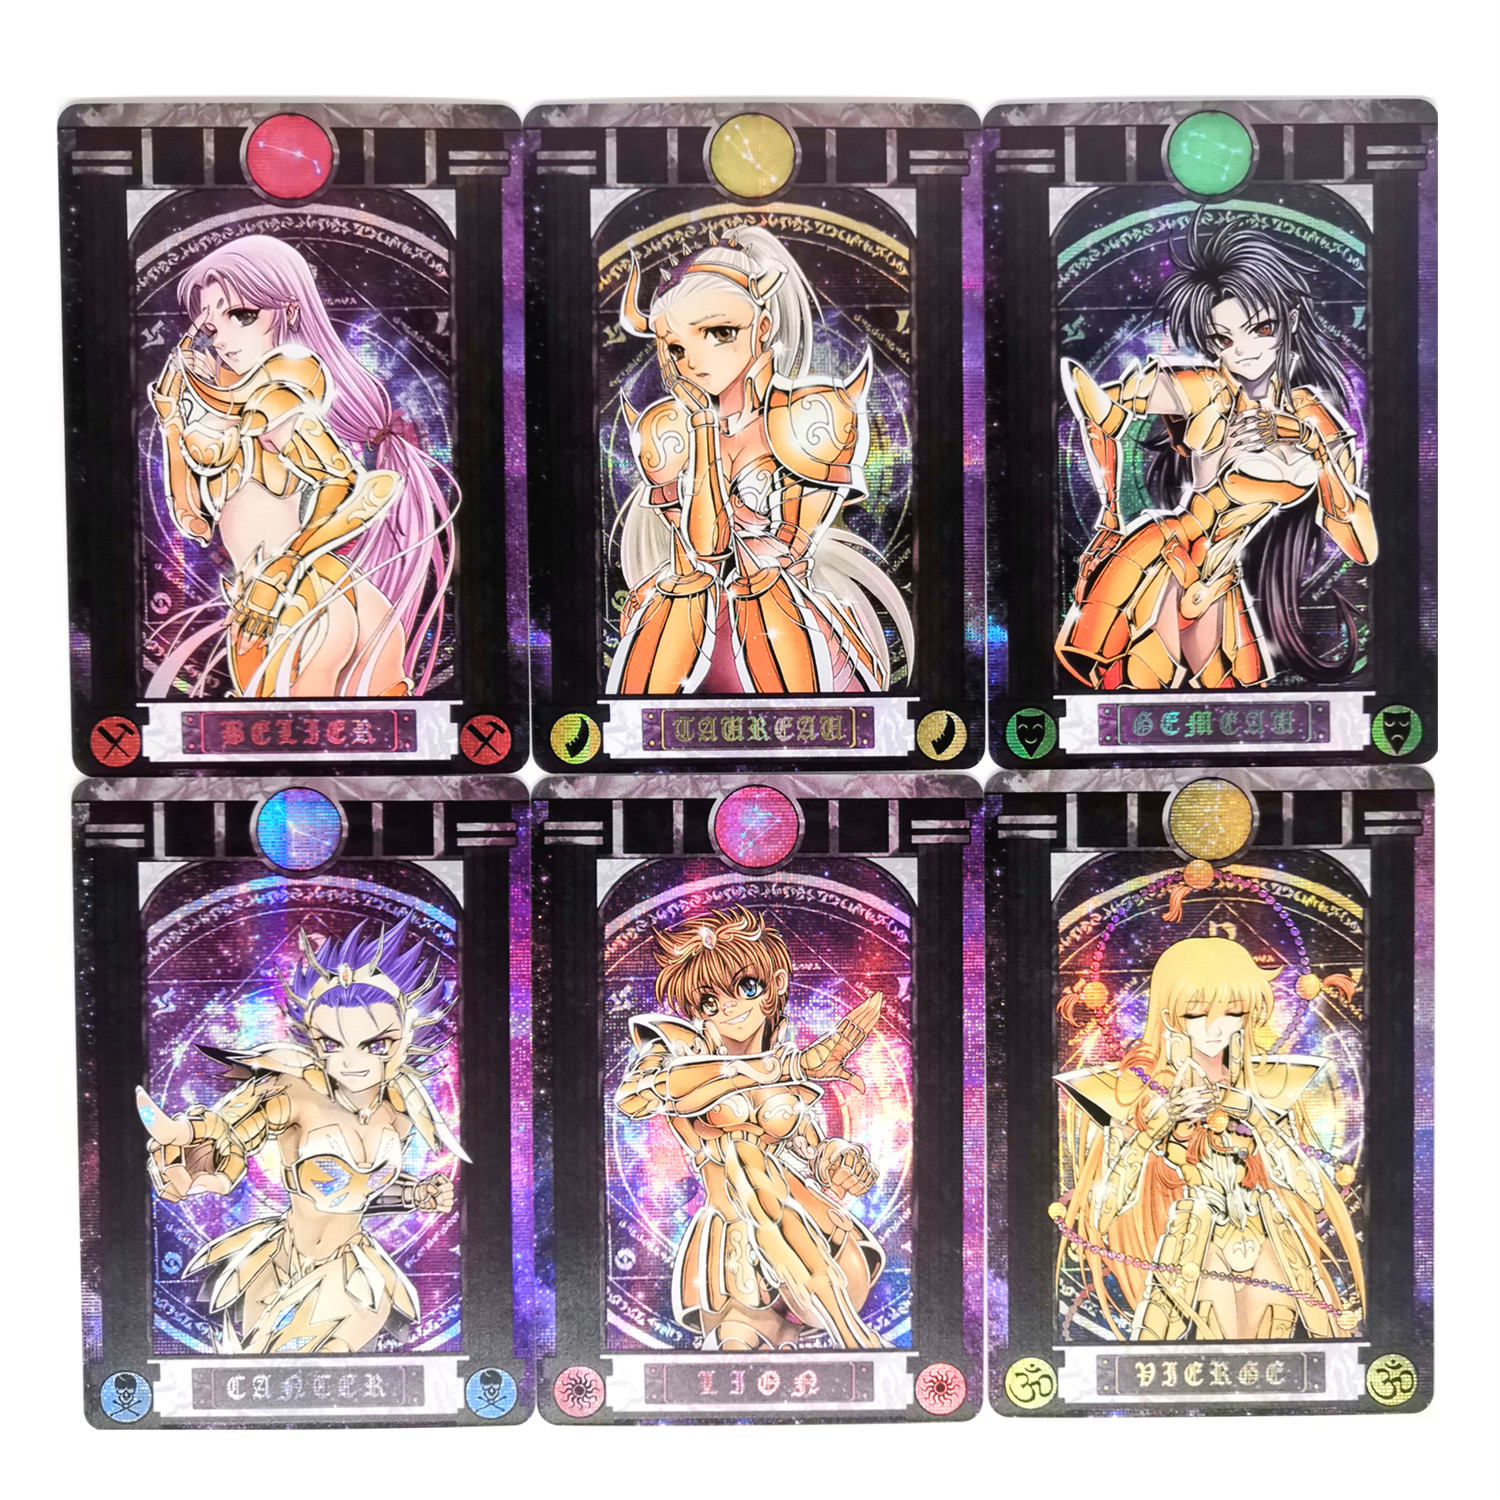 Saint Seiya Girl Edition Twelve Gold Saints Toys Hobbies Hobby Collectibles Game Collection Anime Cards